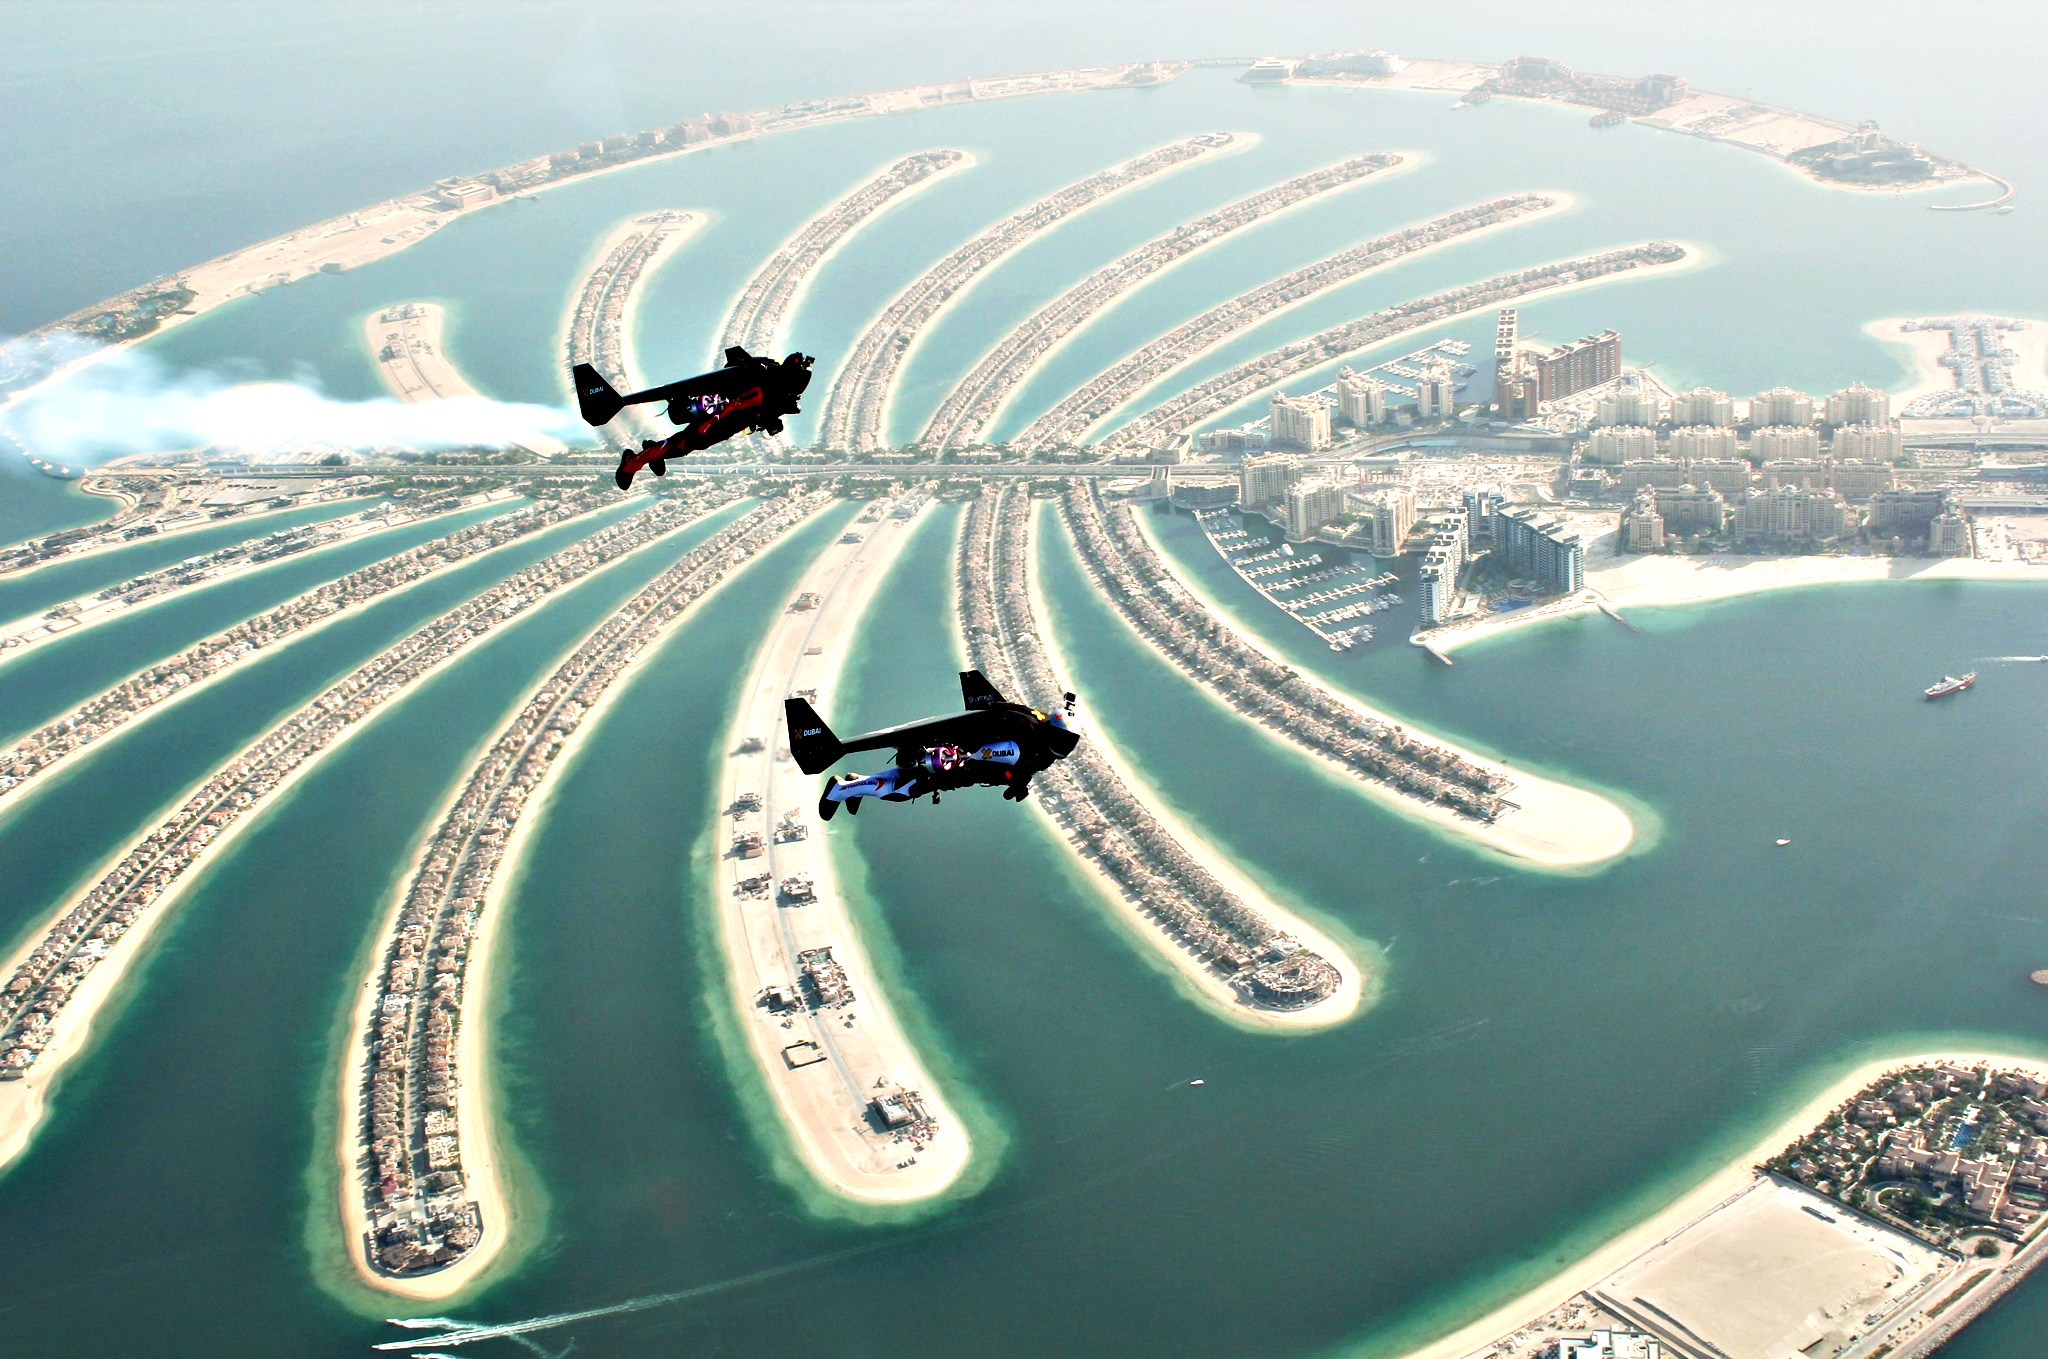 An aerial view taken from a sea plane shows Swiss pilot and original Jetman Yves Rossy and Vince Reffett flying over Dubai's Palm Island...An aerial view taken from a sea plane shows Swiss pilot and original Jetman Yves Rossy (front) and Vince Reffett flying over Dubai's Palm Island, Dubai, United Arab Emirates May 12, 2015